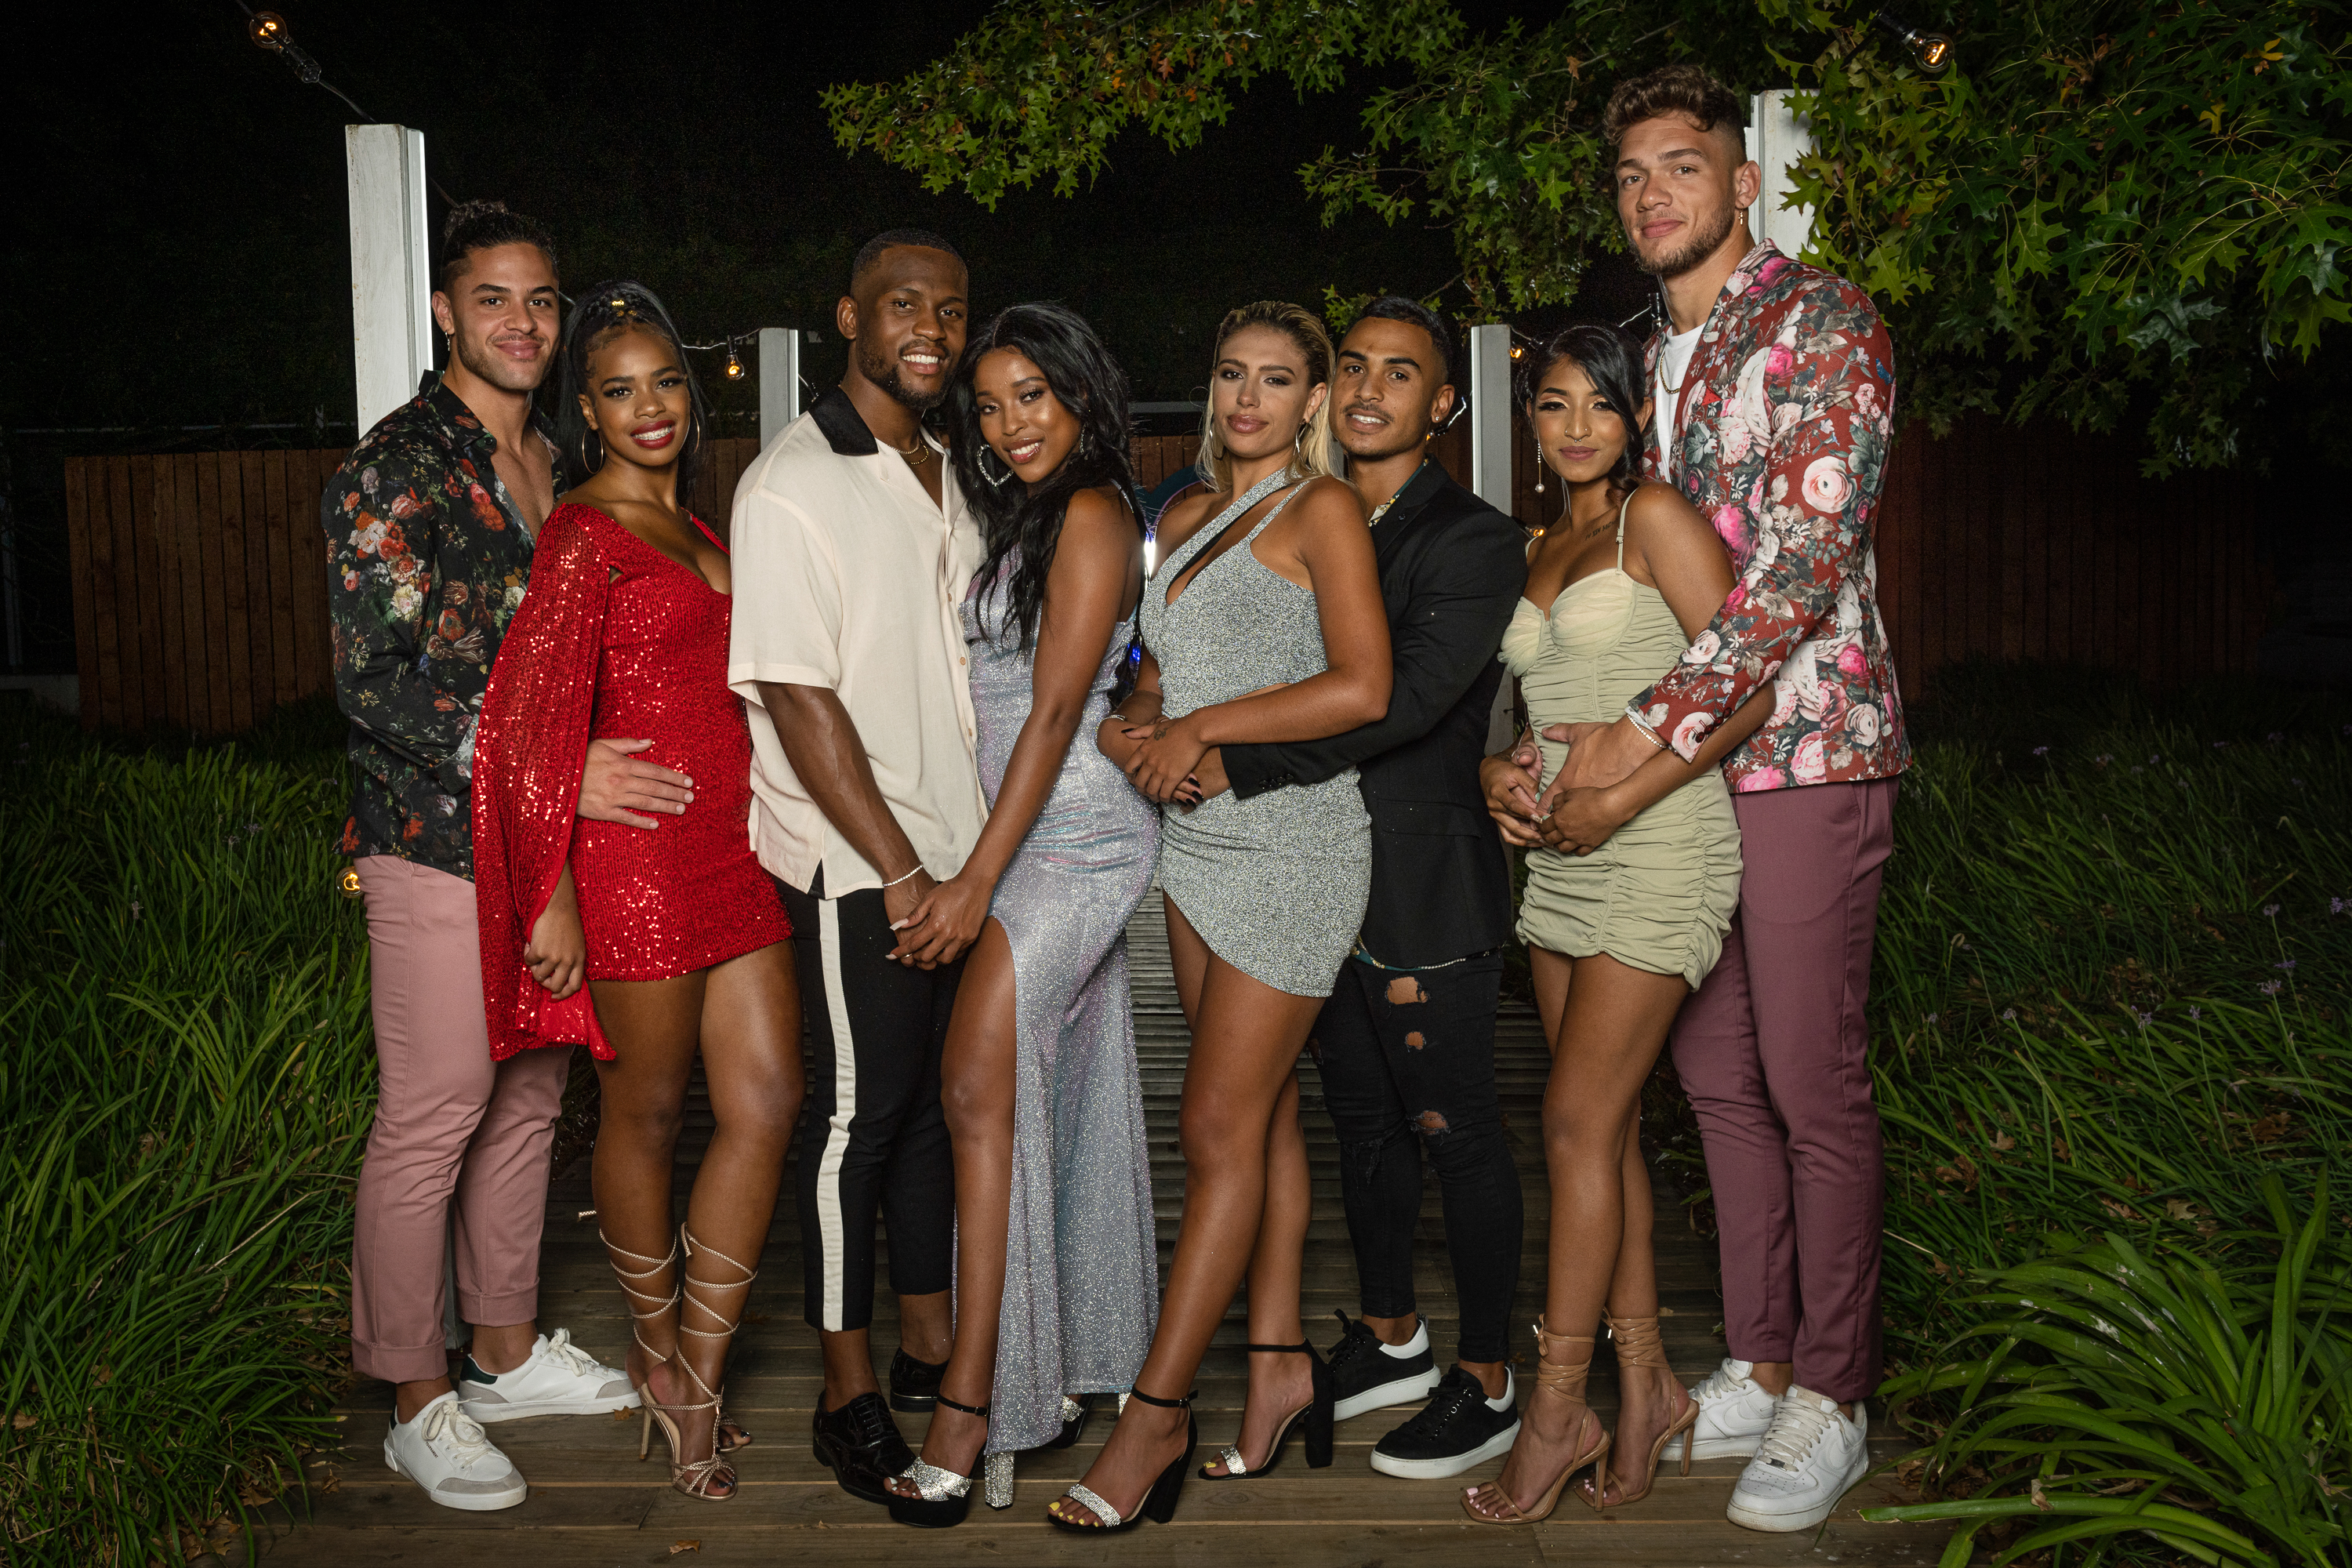 """Electronic Media Network (Pty) (Ltd)1985/002853/06Love Island SA on M-Net 101Pictured: Finale - Ross,Tania, Libho,Thimna, Millie, Asad, Mischka, Xavier.This photograph is copyrighted by M-Net and can only be used for editorial purposes in direct connection with the programme or event mentioned above (""""Permitted Use""""). This photograph will not be used in any other way other than the Permitted Use. Without limitation to the generality of the foregoing, this photograph will not be used, framed or linked in such a way that the photograph appears as part of any unauthorised public domain. This photograph must not be syndicated by any other company, publication or website, or permanently archived without the express written permission by M-Net Publicity."""